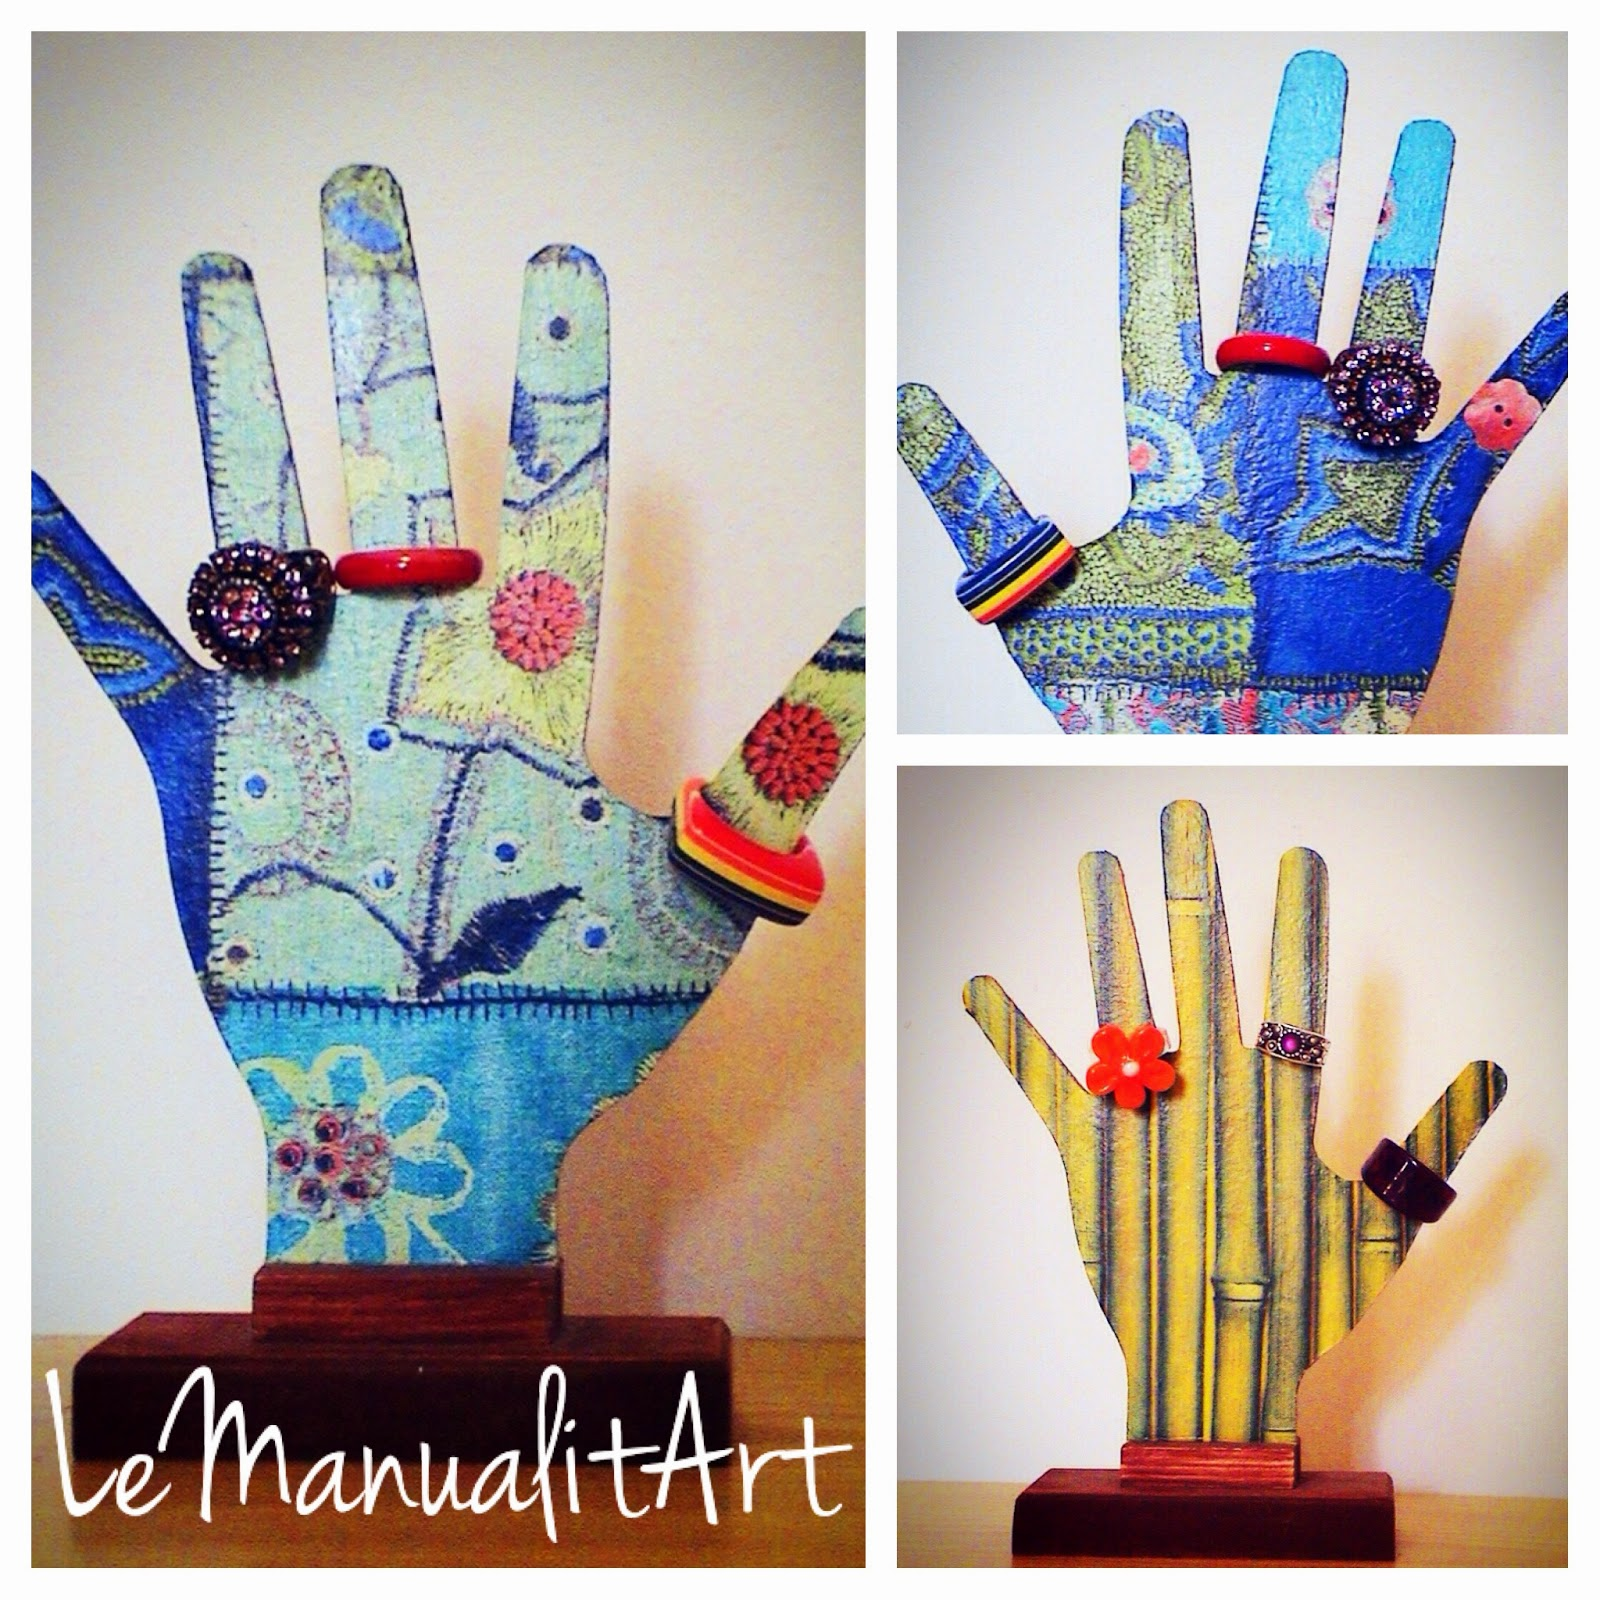 LeManualitArt DIY: decoupage